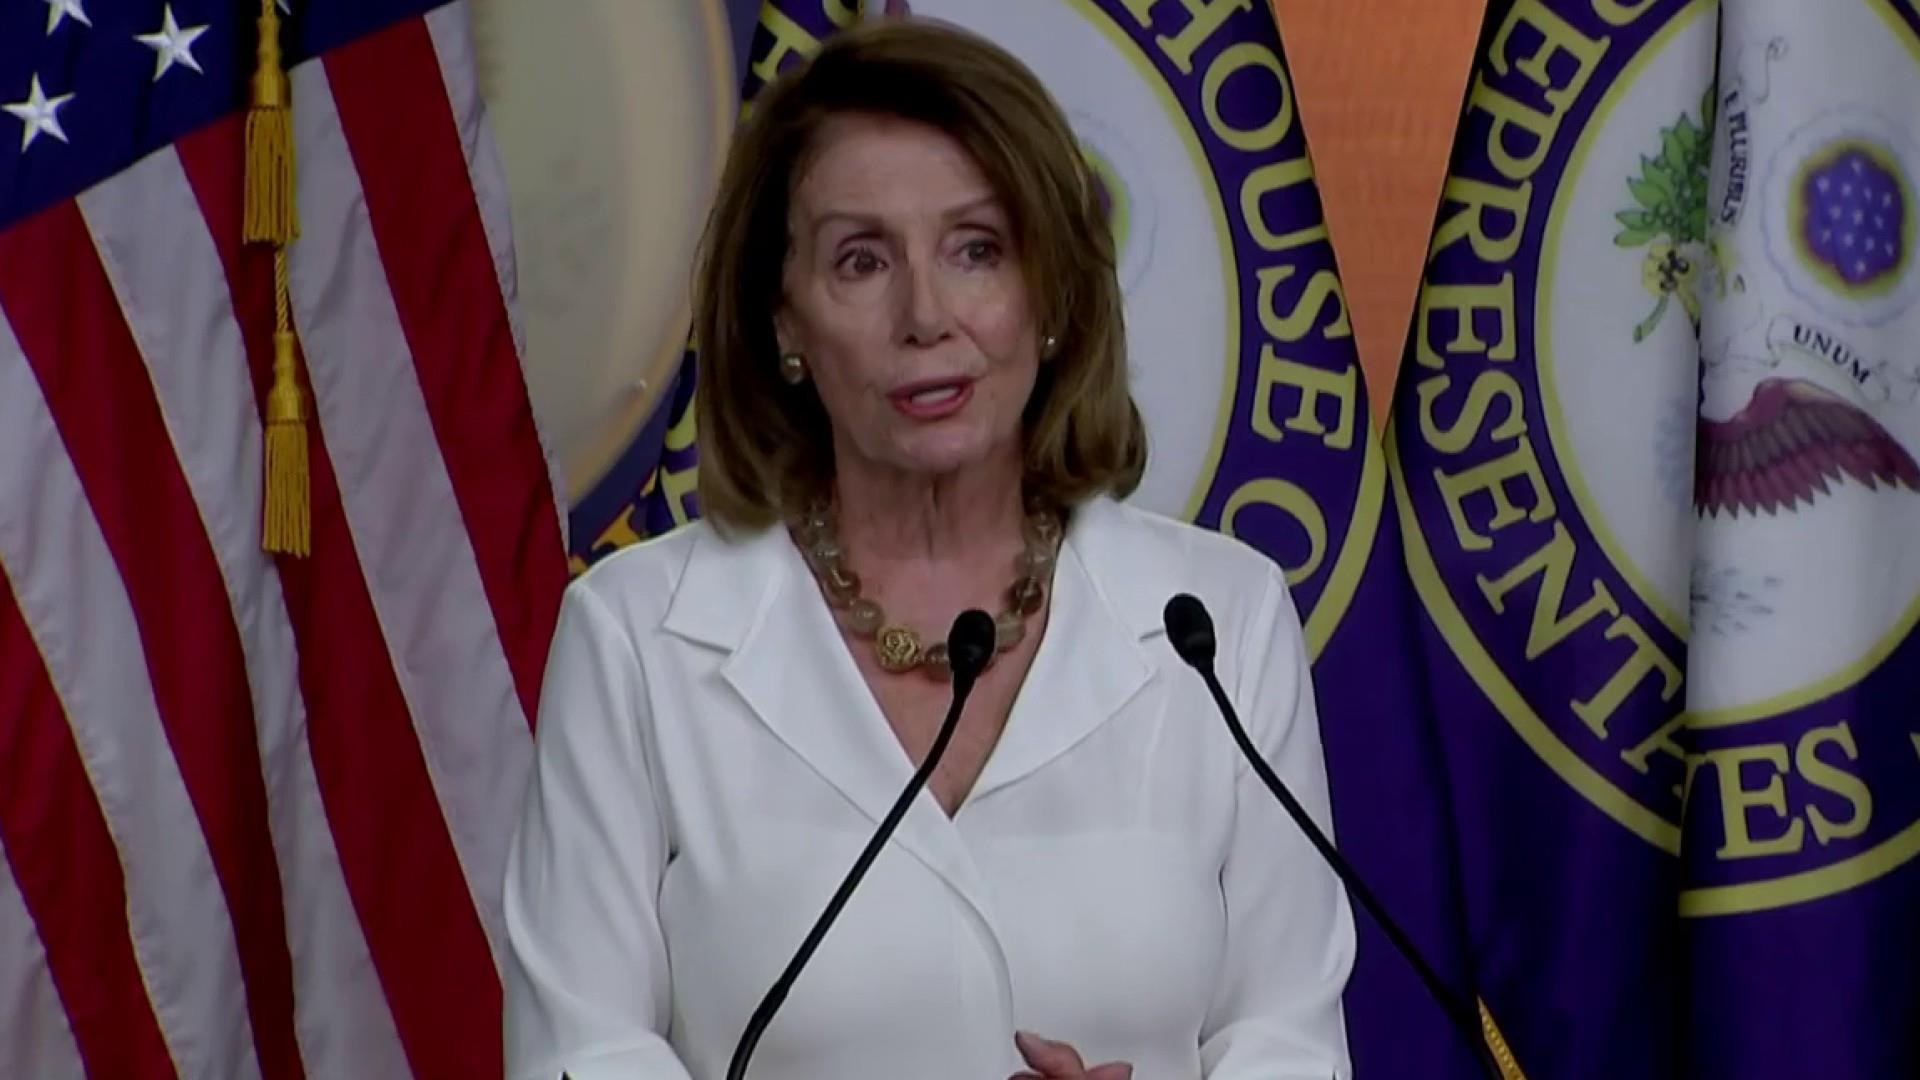 Potential challenger quits, Pelosi likely next Speaker